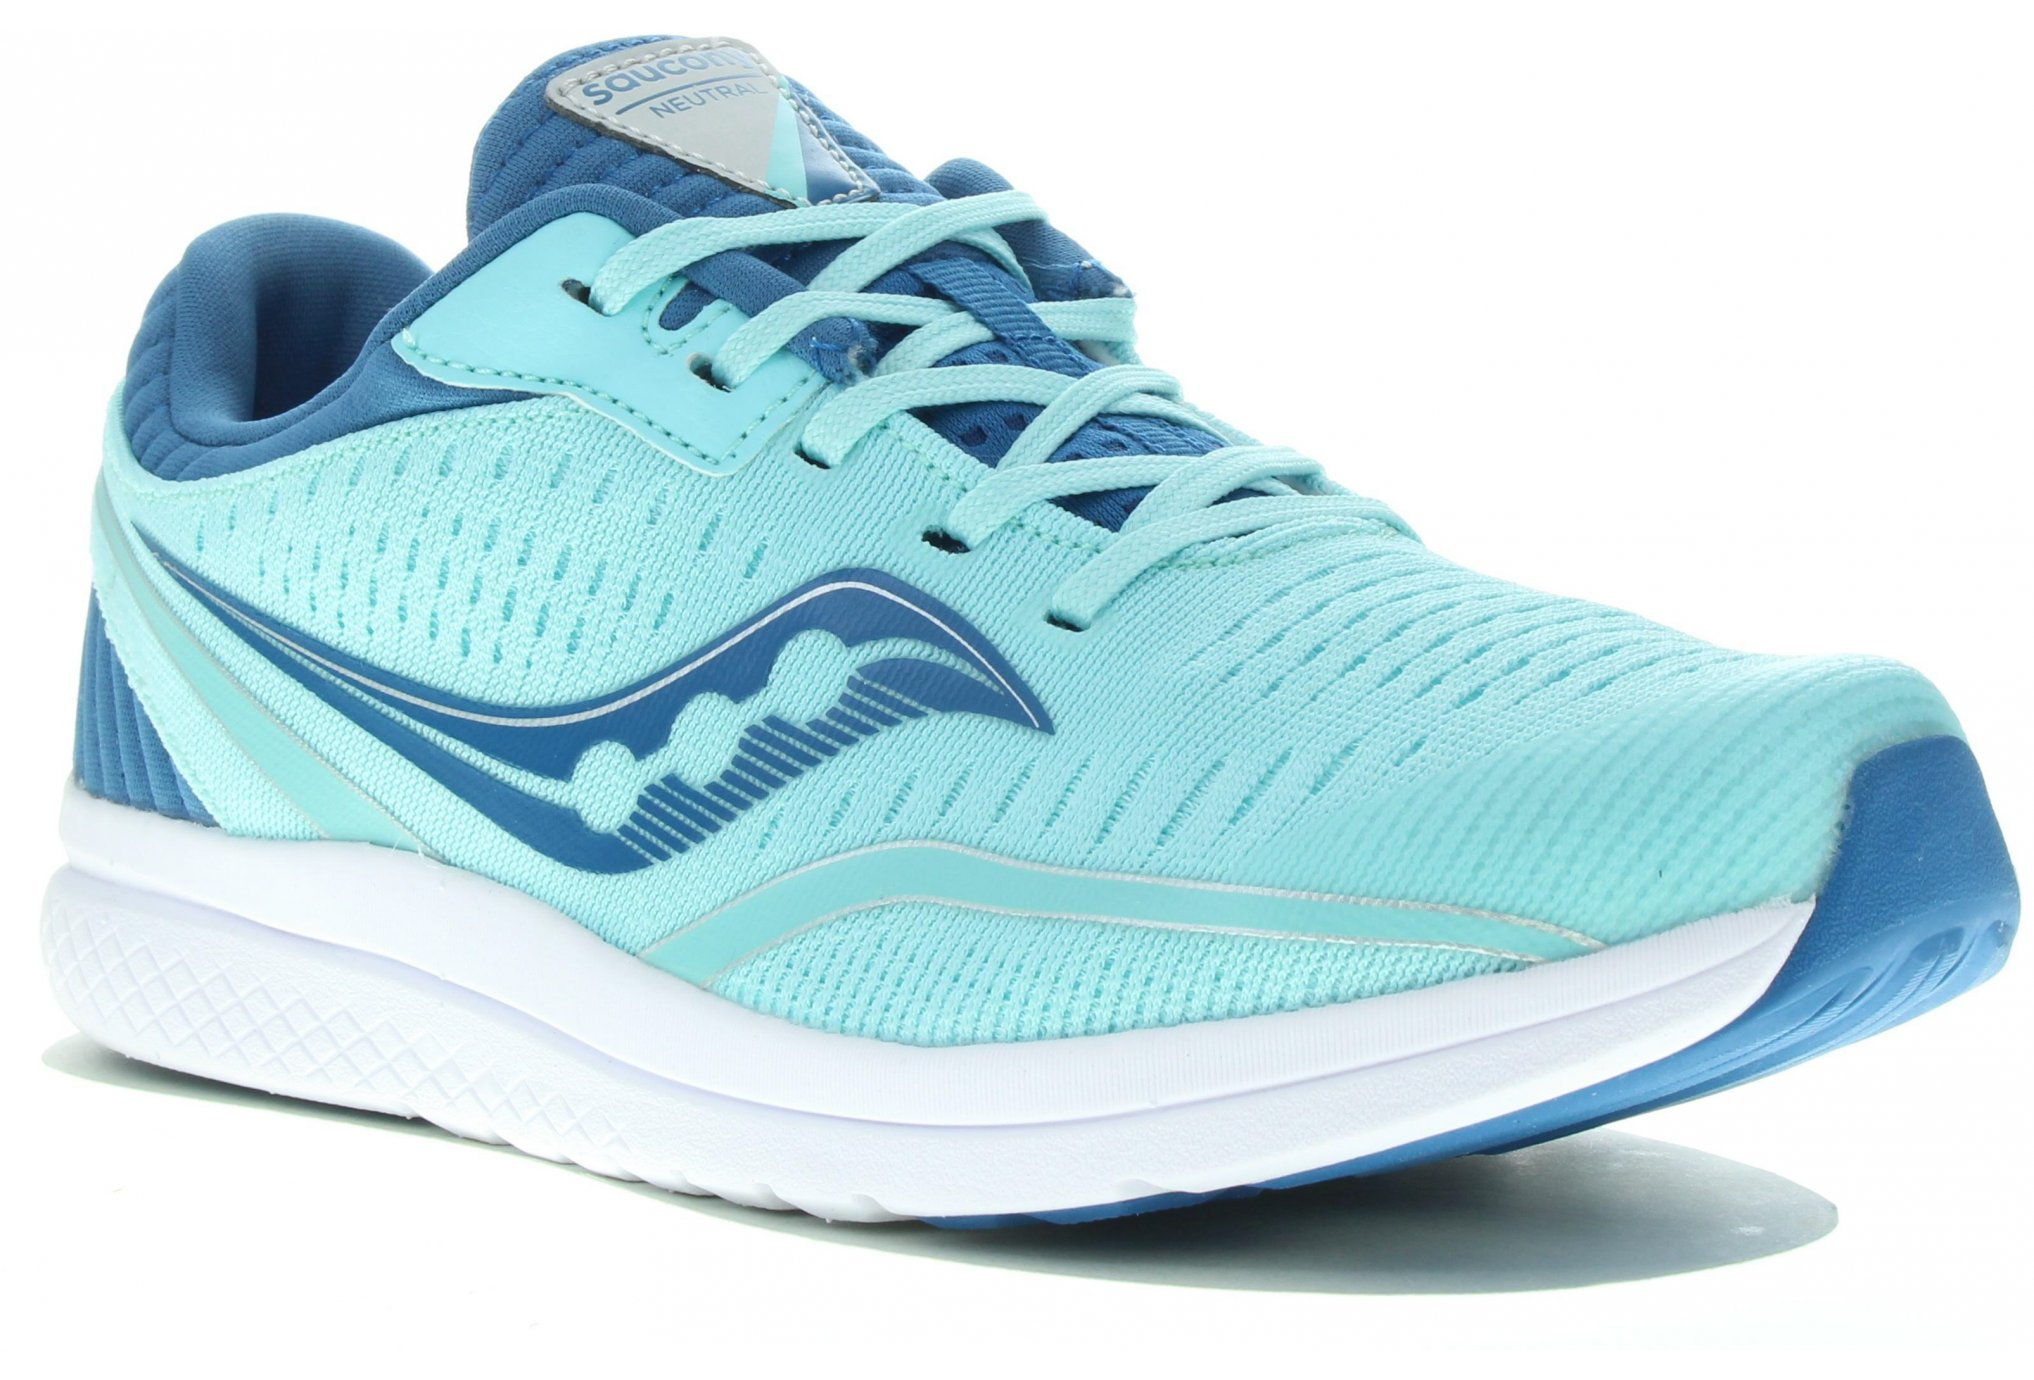 Saucony S-Kinvara 11 Fille Chaussures running femme